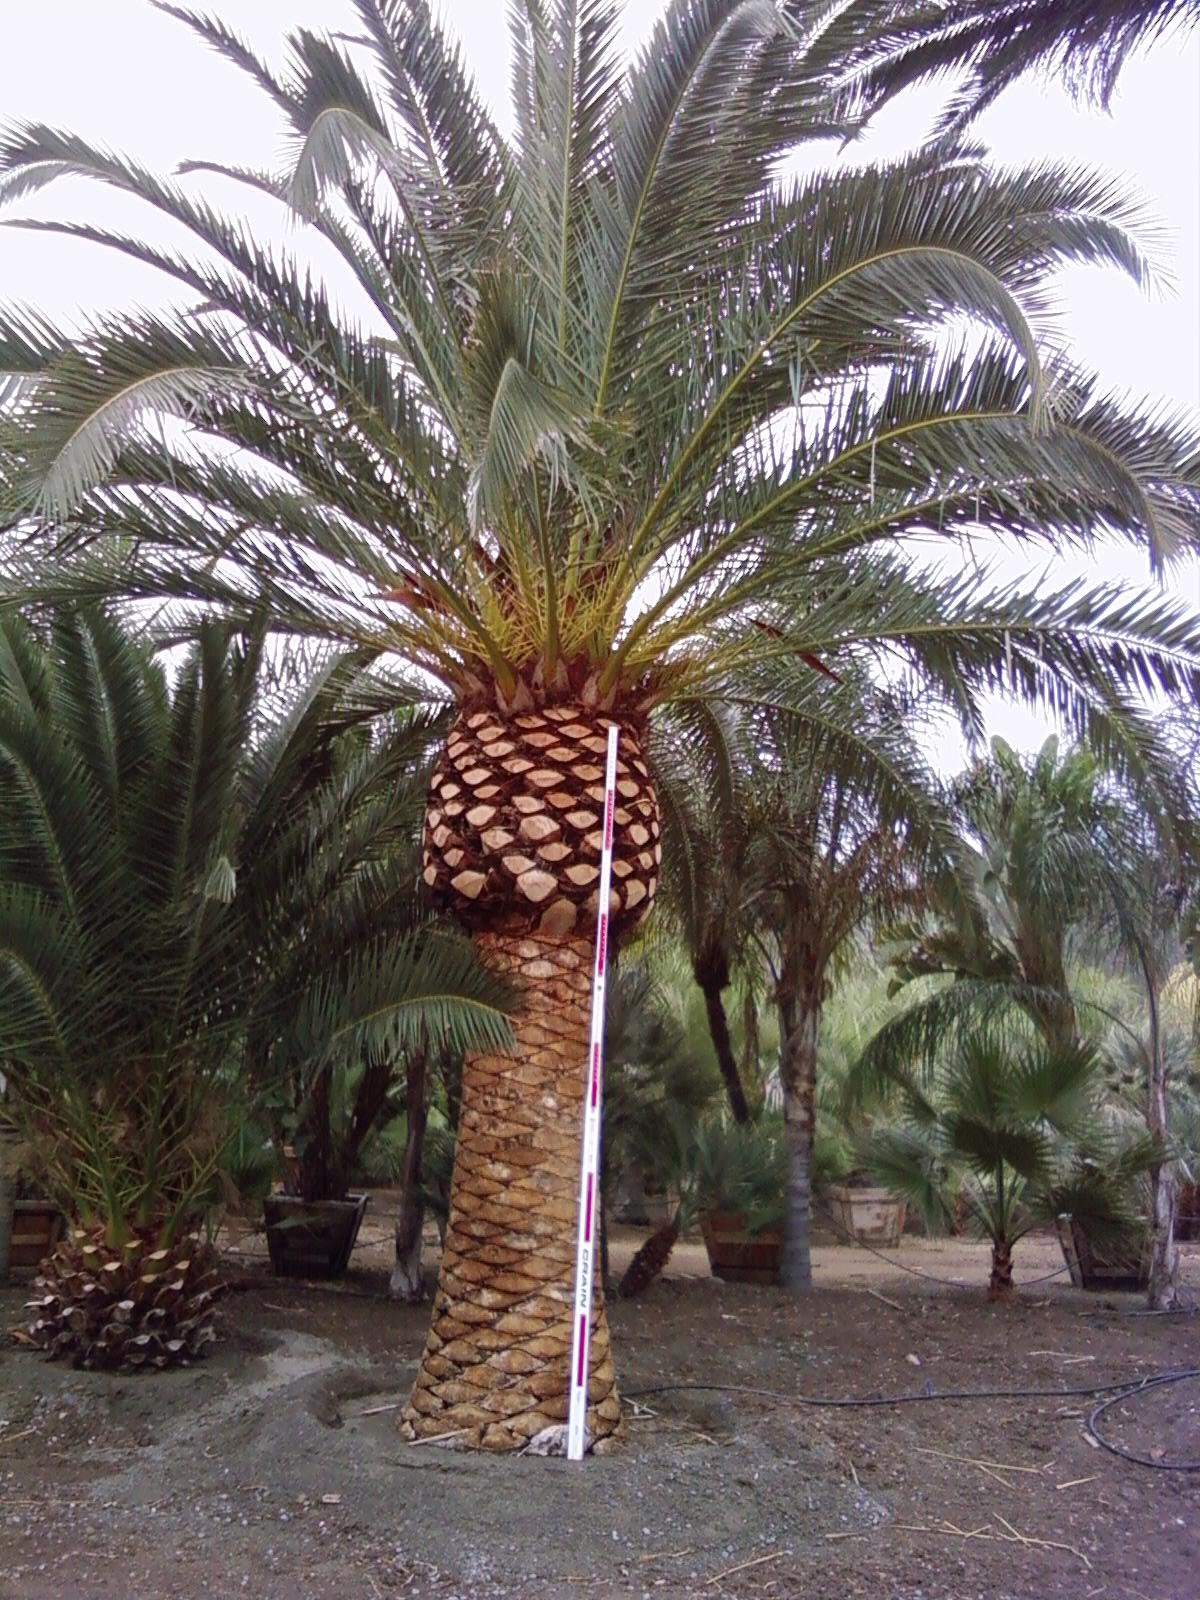 gregory palm farms wanted canary island palm trees cash paid in 24 hours. Black Bedroom Furniture Sets. Home Design Ideas